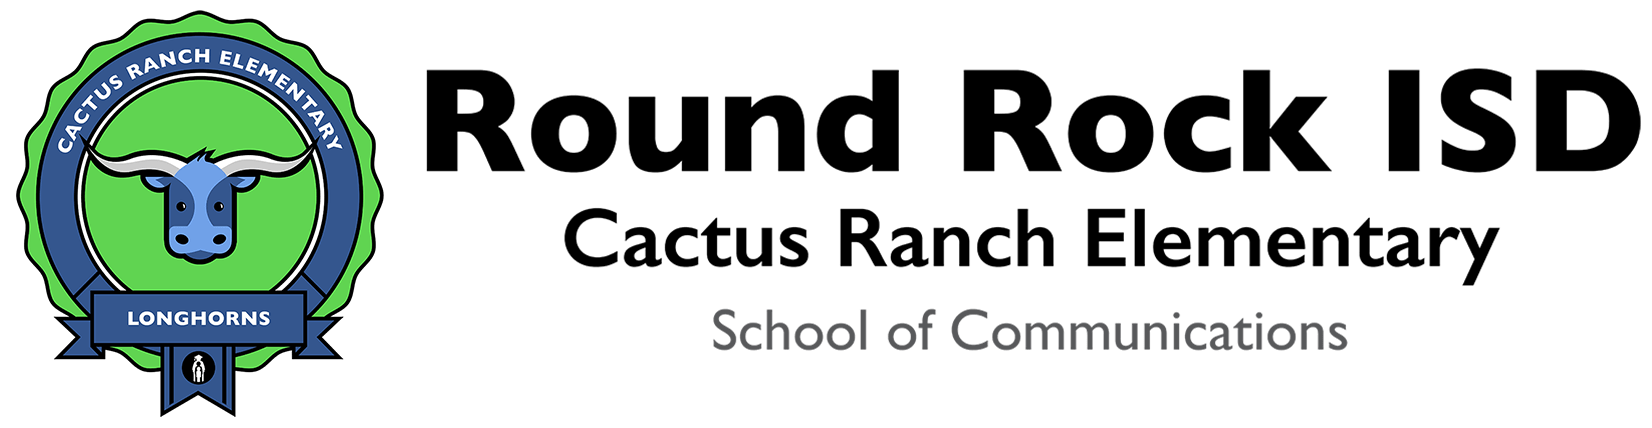 Cactus Ranch Elementary School